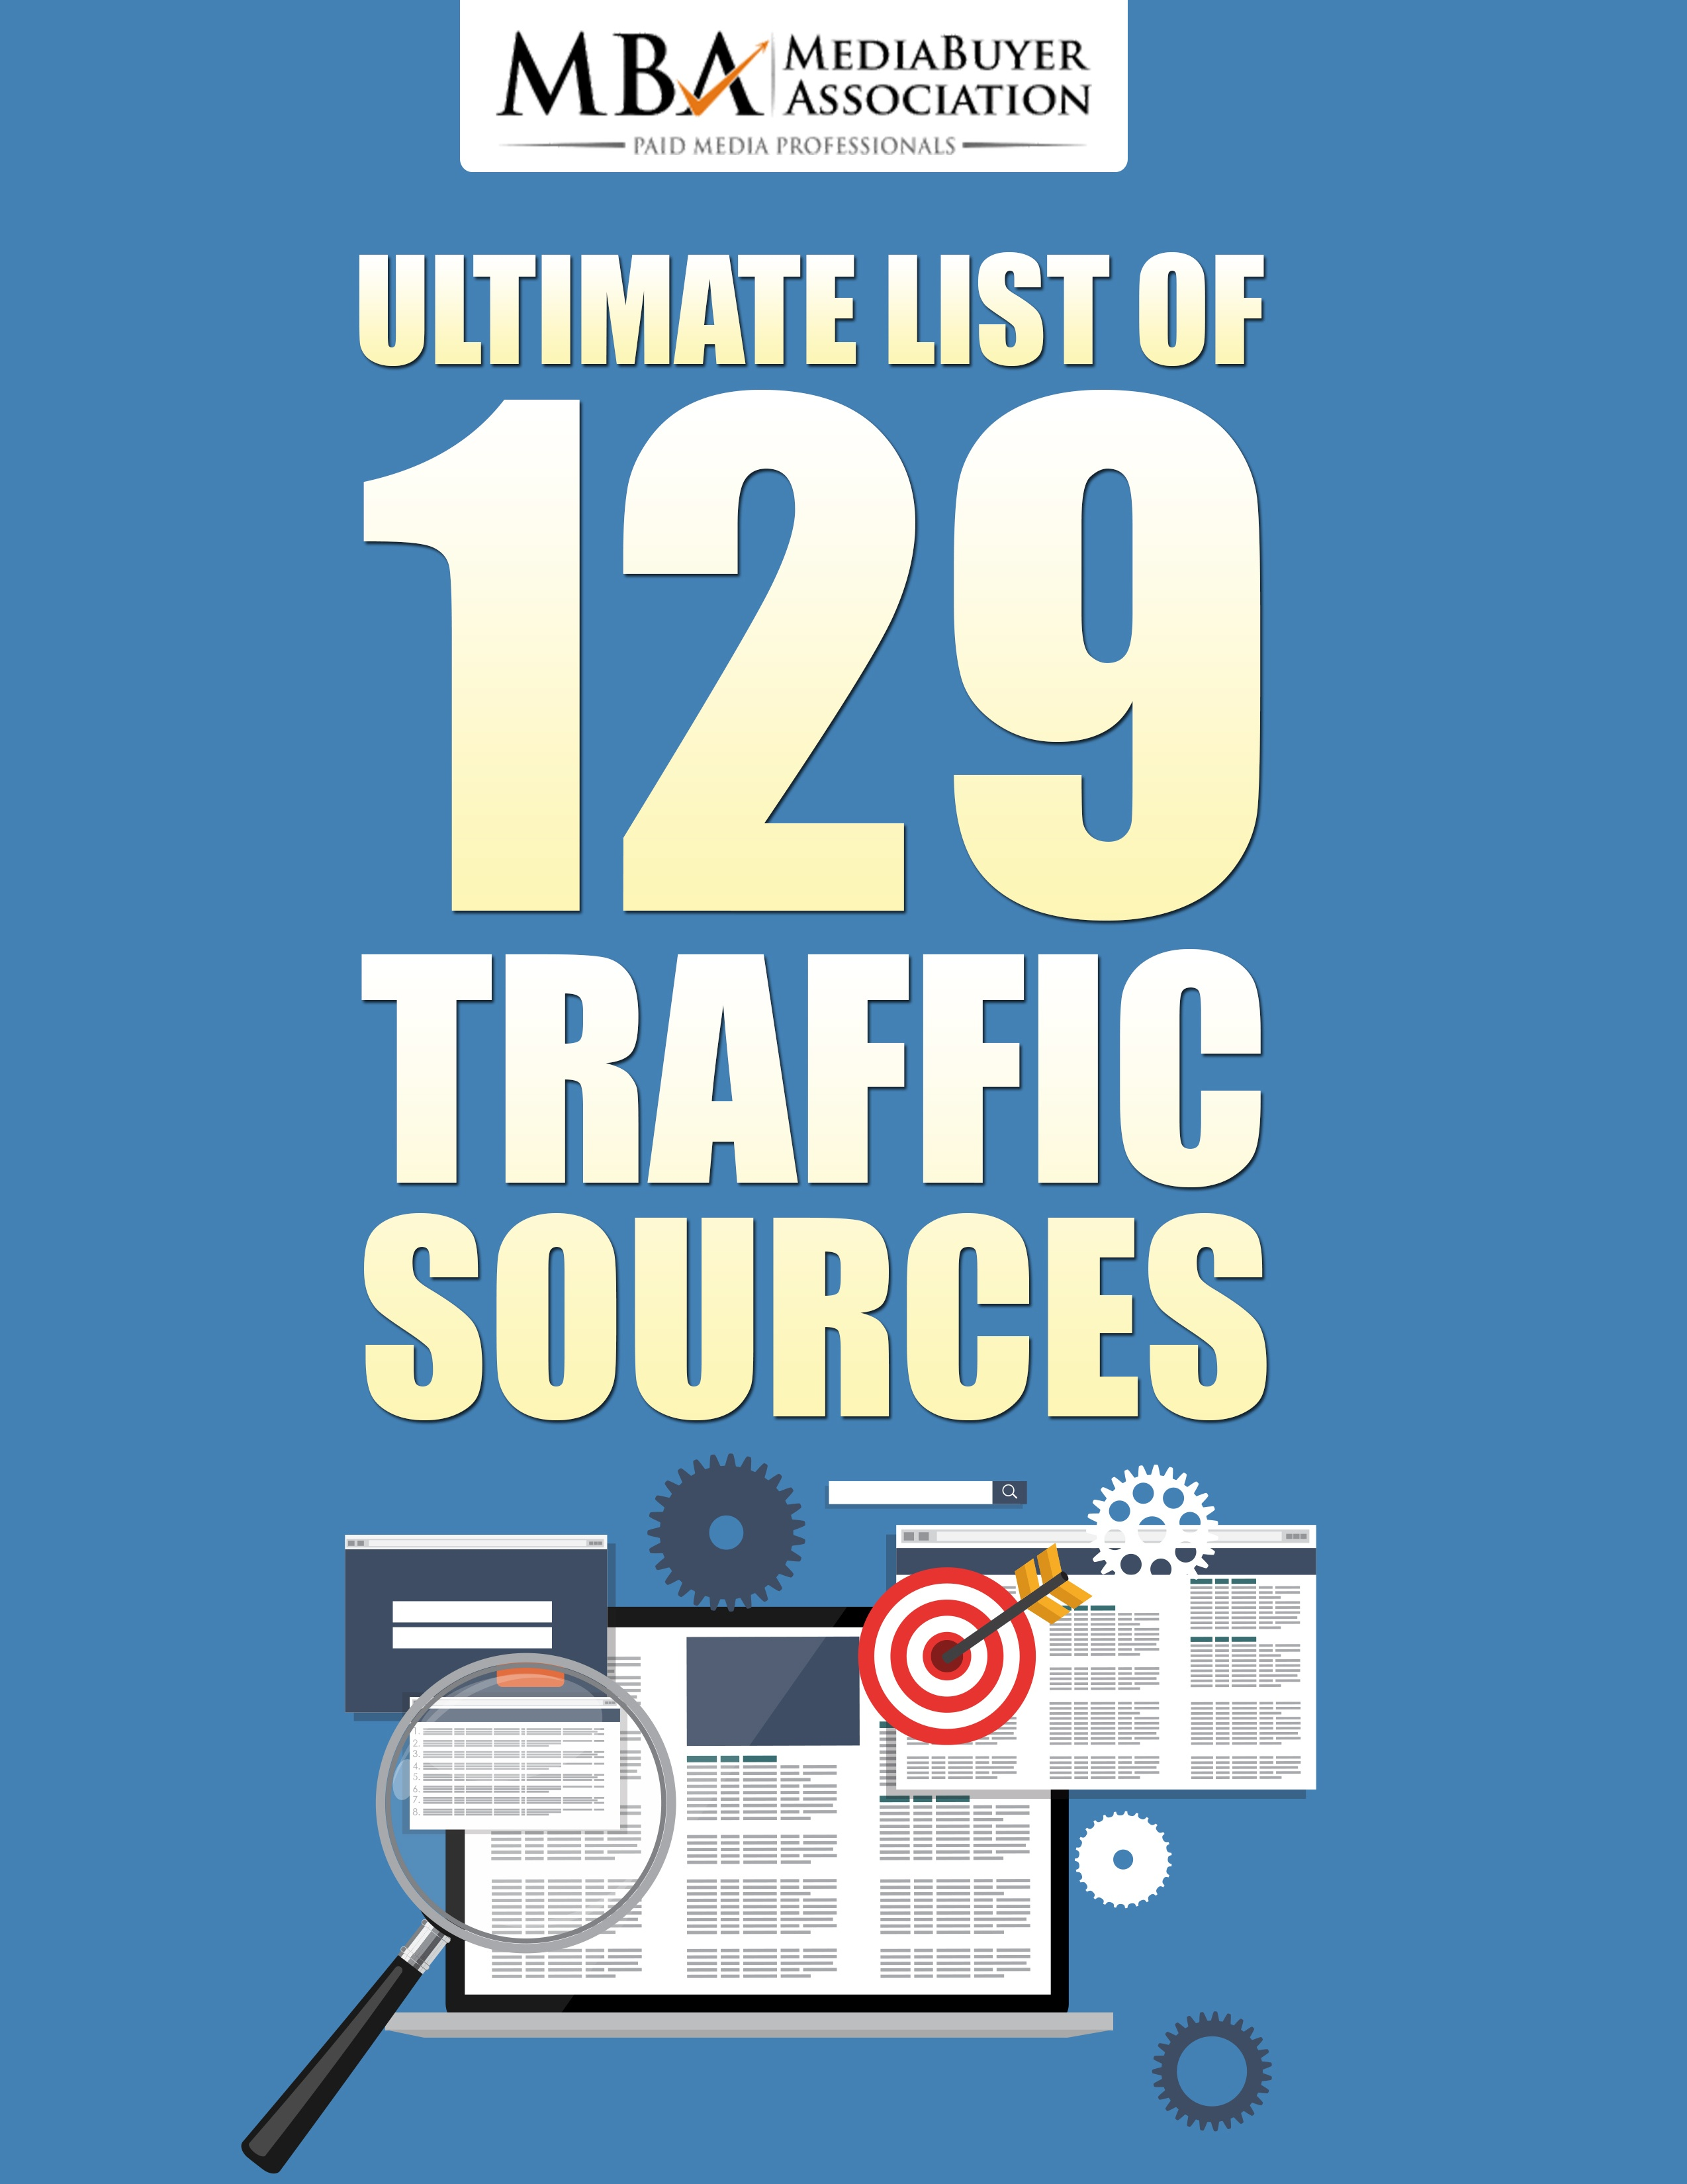 Ultimate List Of 129 Traffic Sources is the title